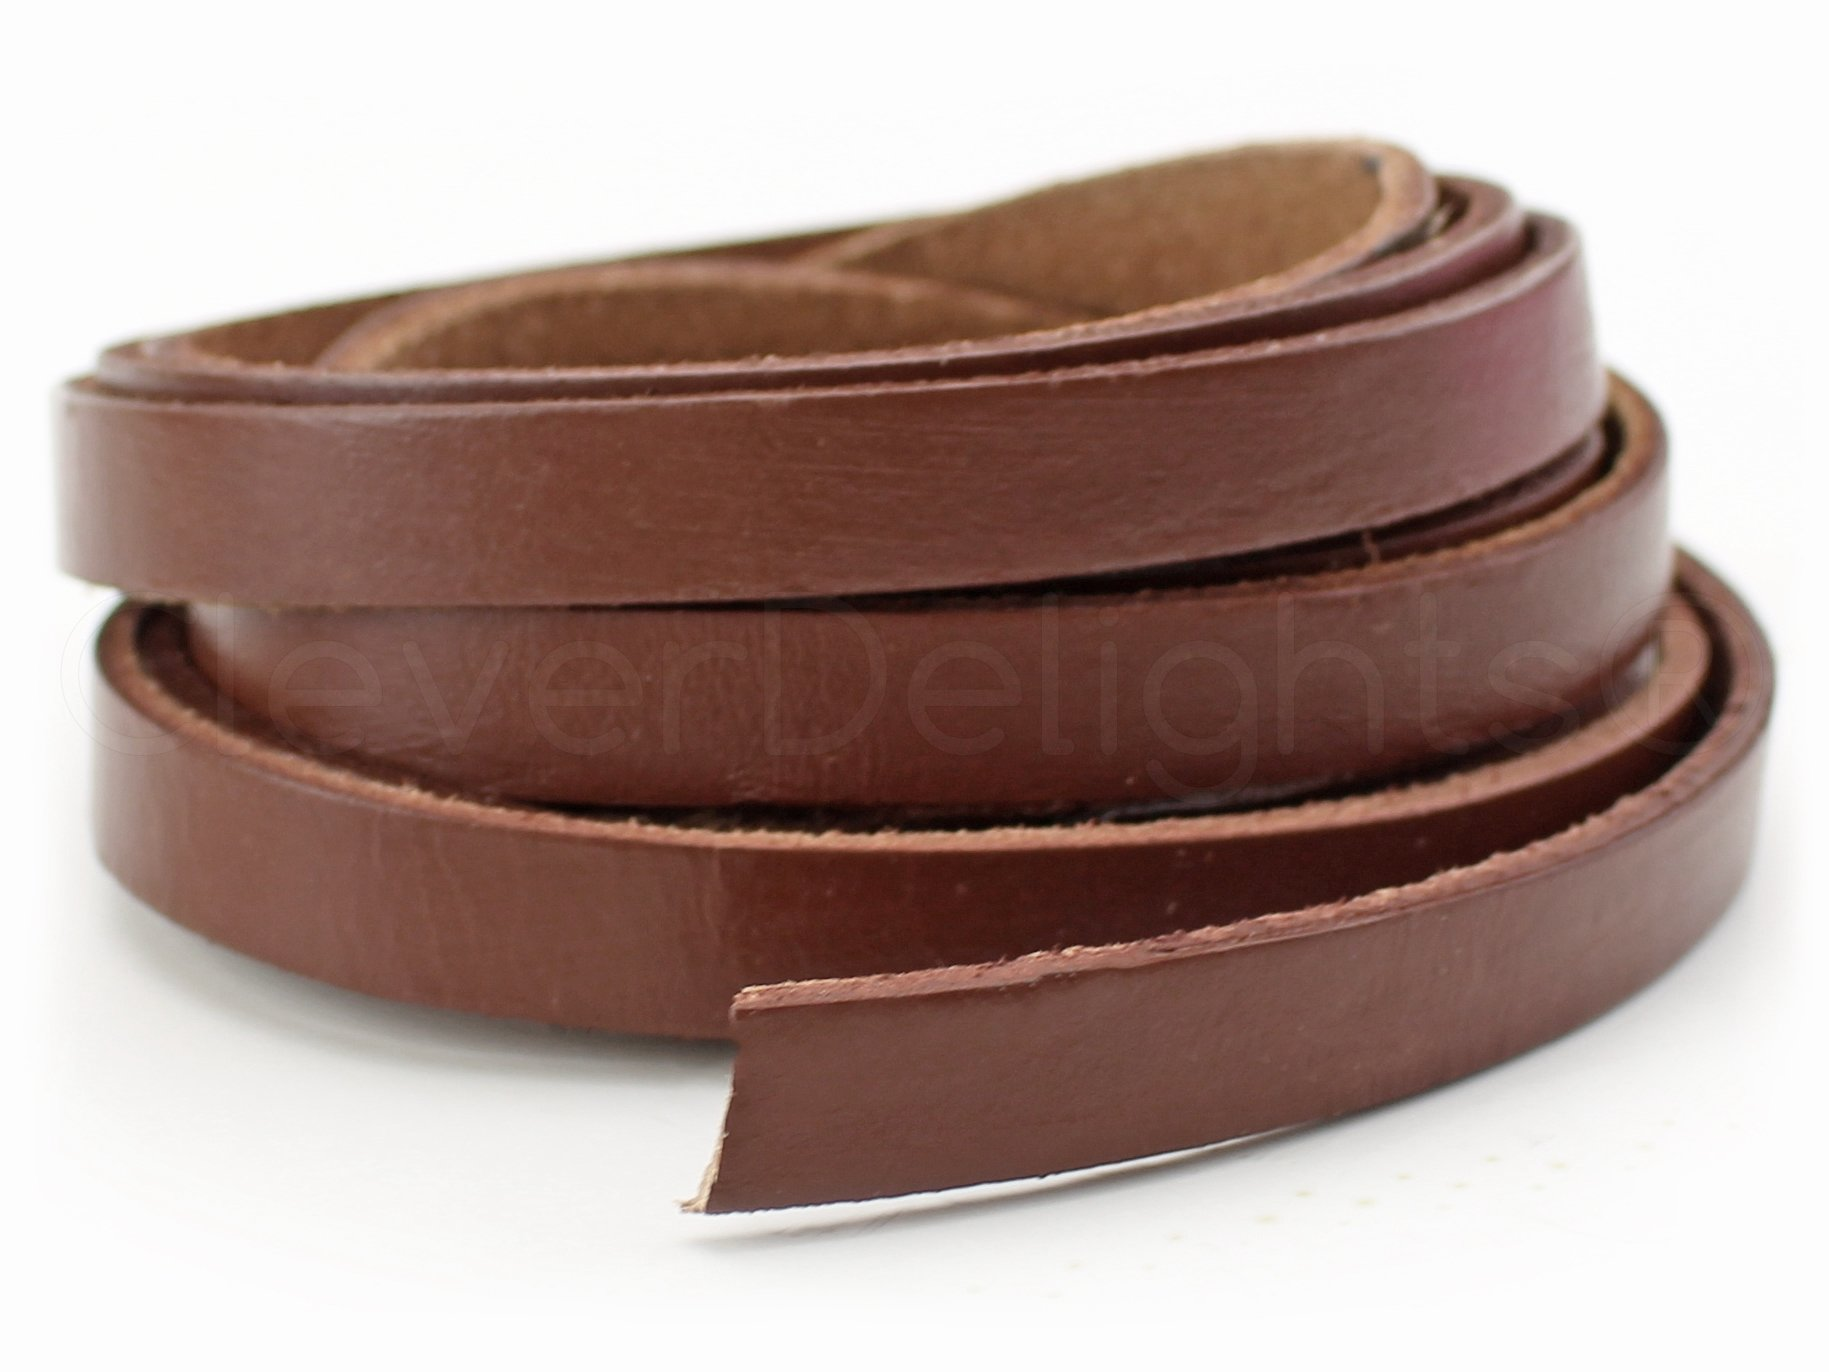 CleverDelights Genuine Leather Strap - Brown - 3/8'' Wide - 15 Feet Long - 5-6oz - Leather Craft